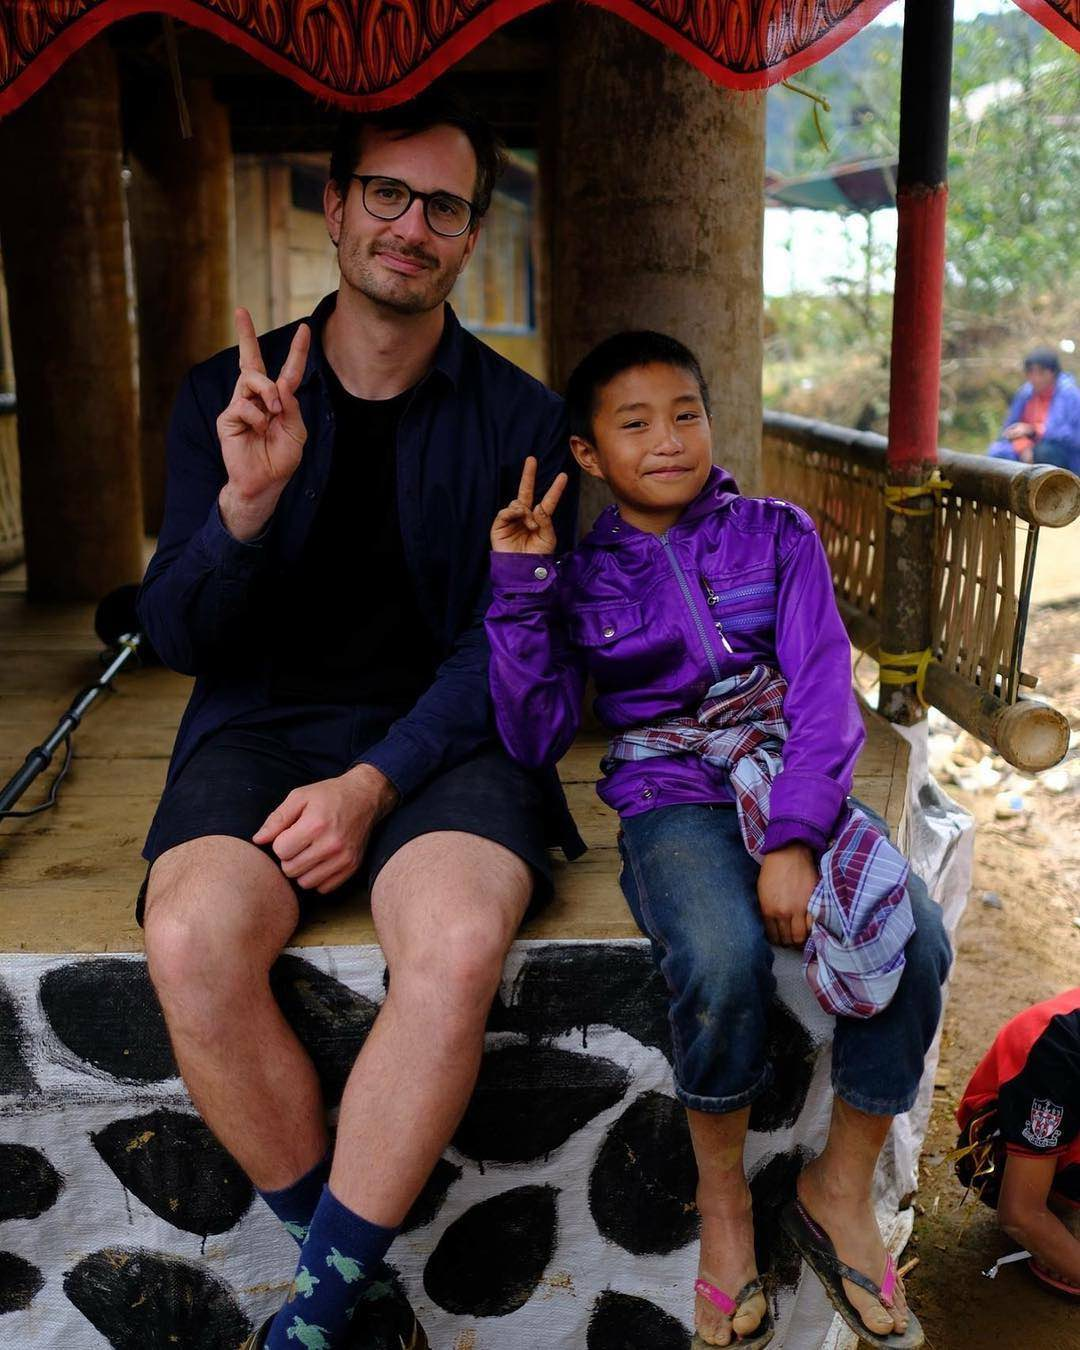 david farrier dying not worth try coming close peace